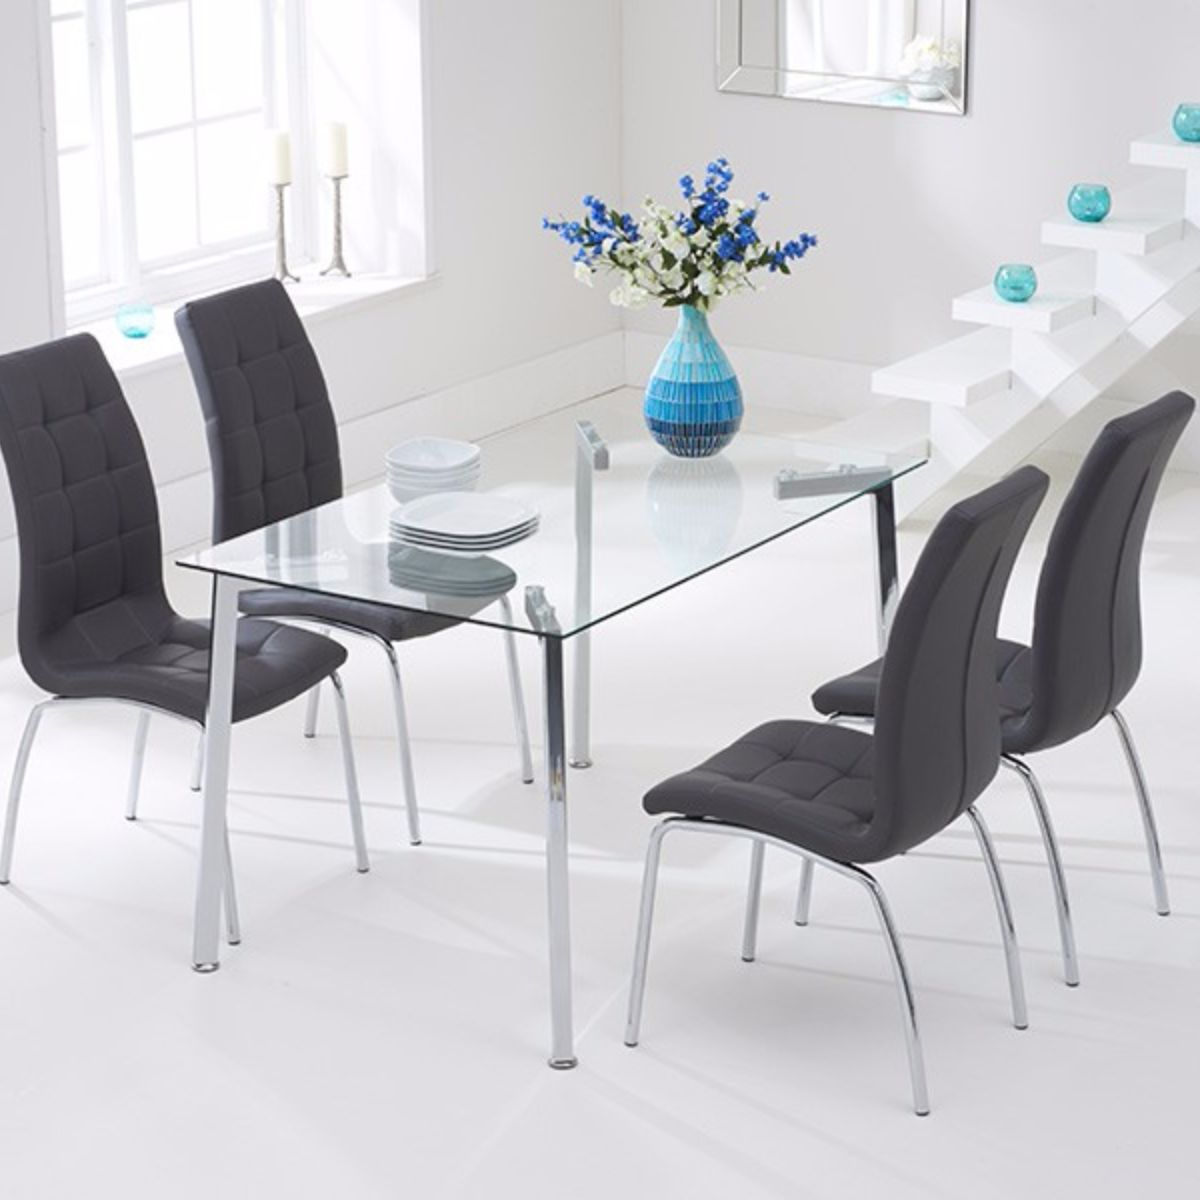 Munich Glass Dining Table with 9 Chairs